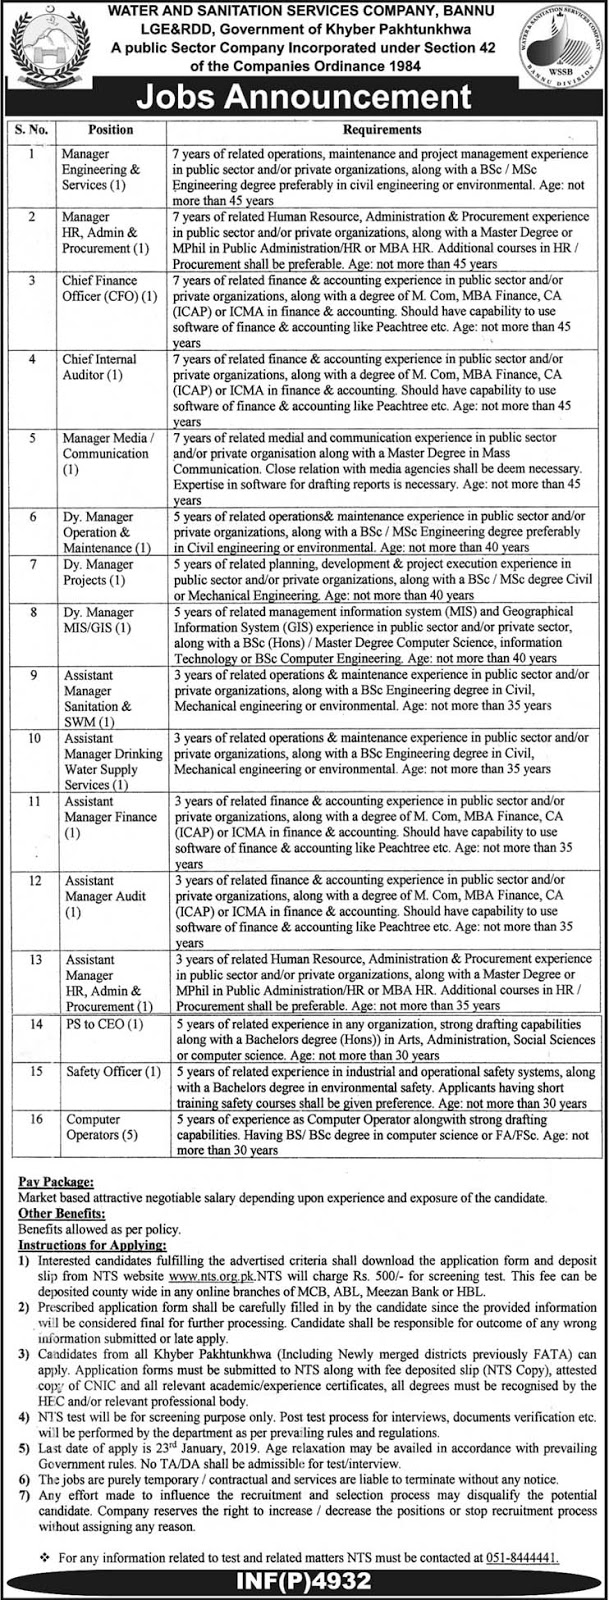 NTS Jobs in Water & Sanitation Services Company Bannu Jan 2019